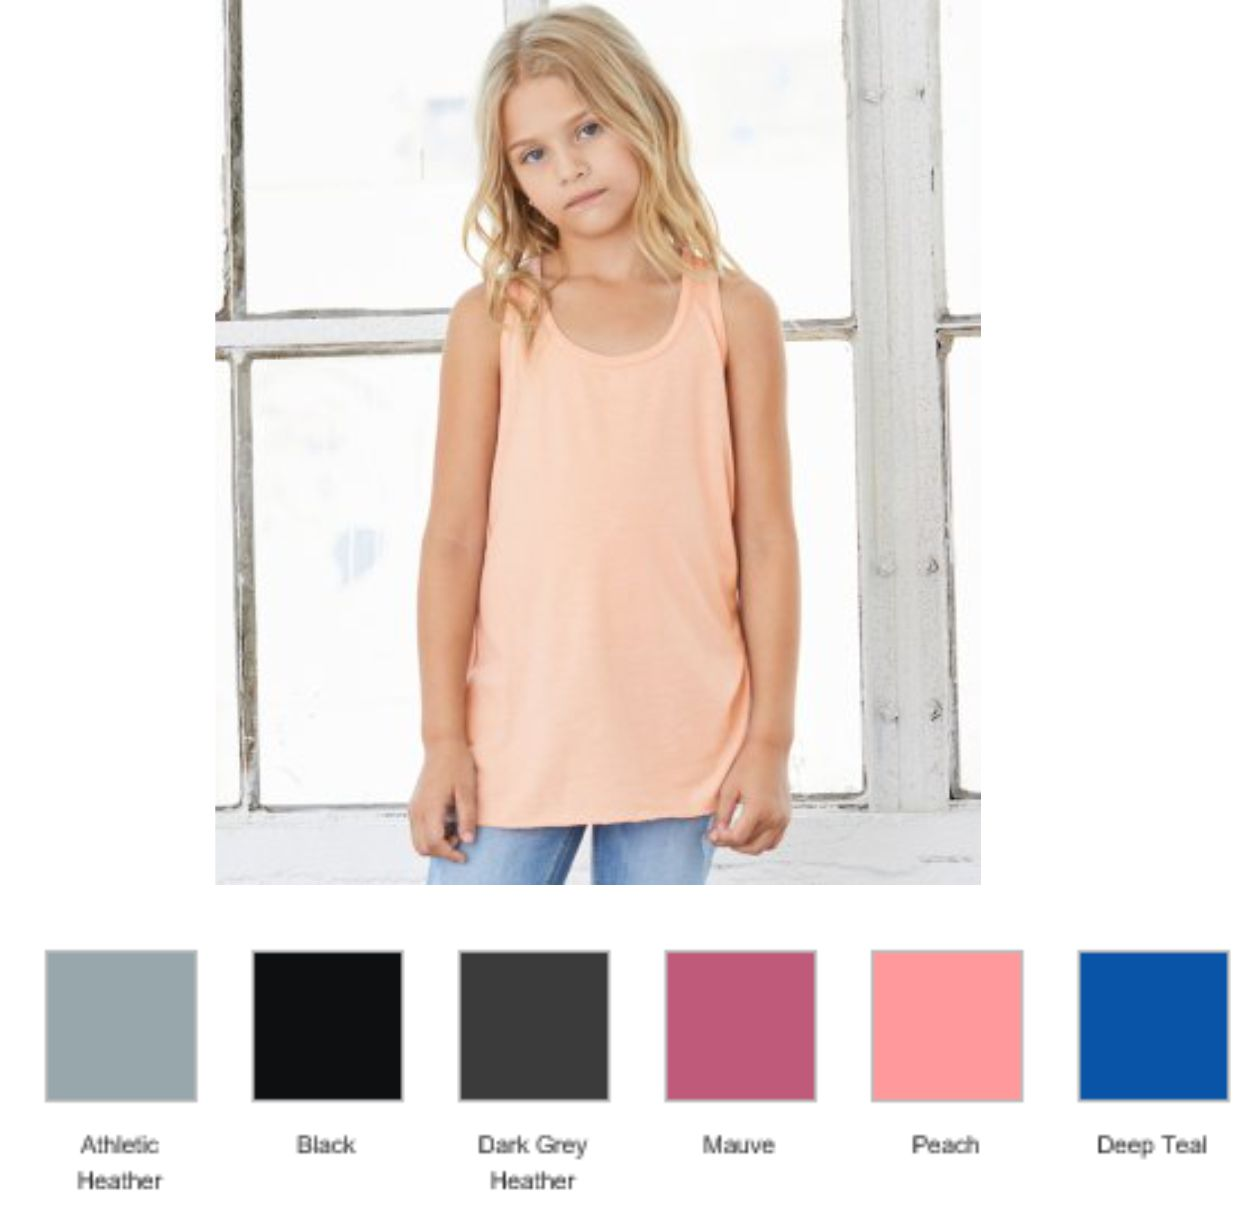 BL8800Y Bella Youths Flowy Racer Back Tank Top